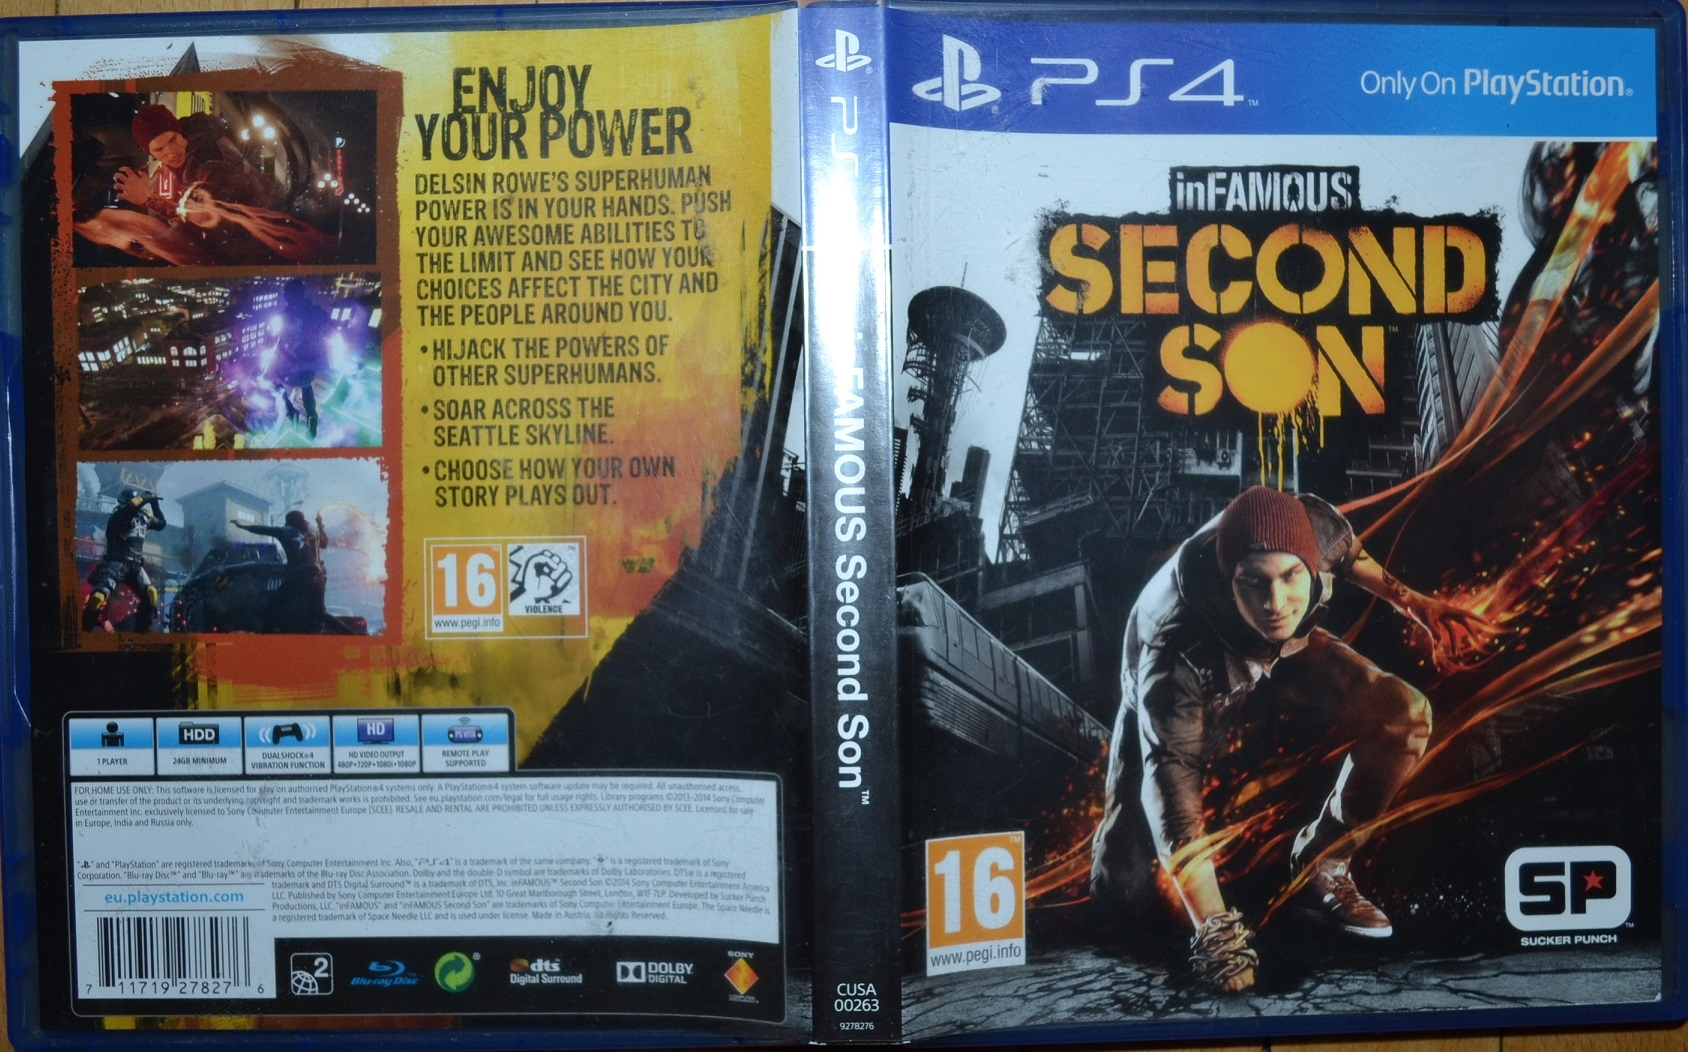 Ps4 Infamous Second Son Stan Uzywany 9092859559 Allegro Pl